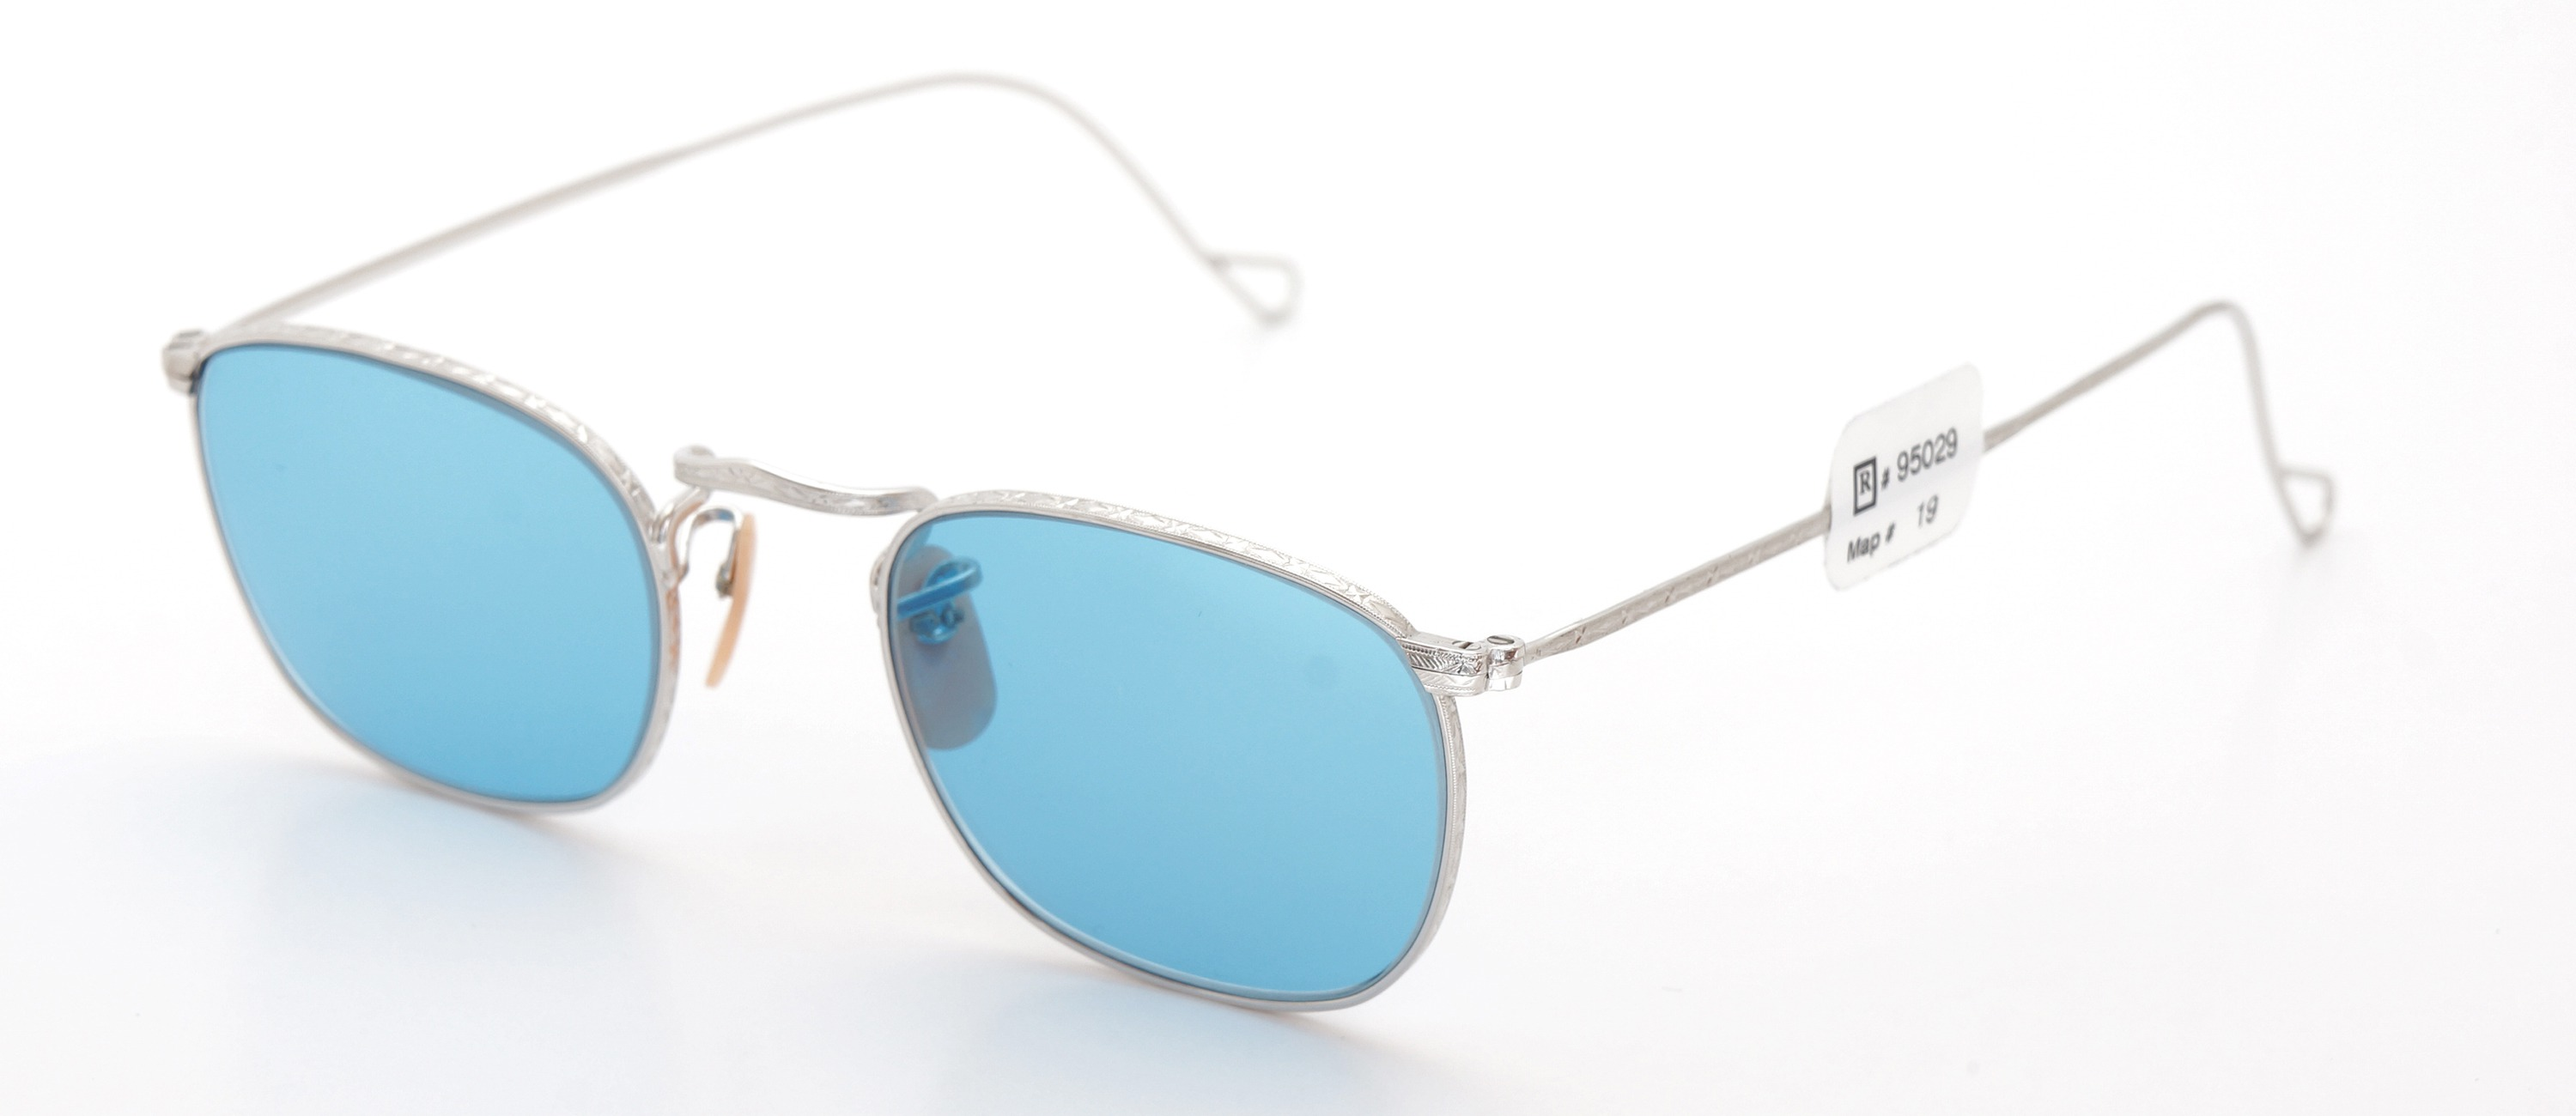 The Spectacle メガネ 1930s-40s Bausch&Lomb Full-Frame Ful-Vue Whitaker WG 45-21 Light-Blue-Lense イメージ3